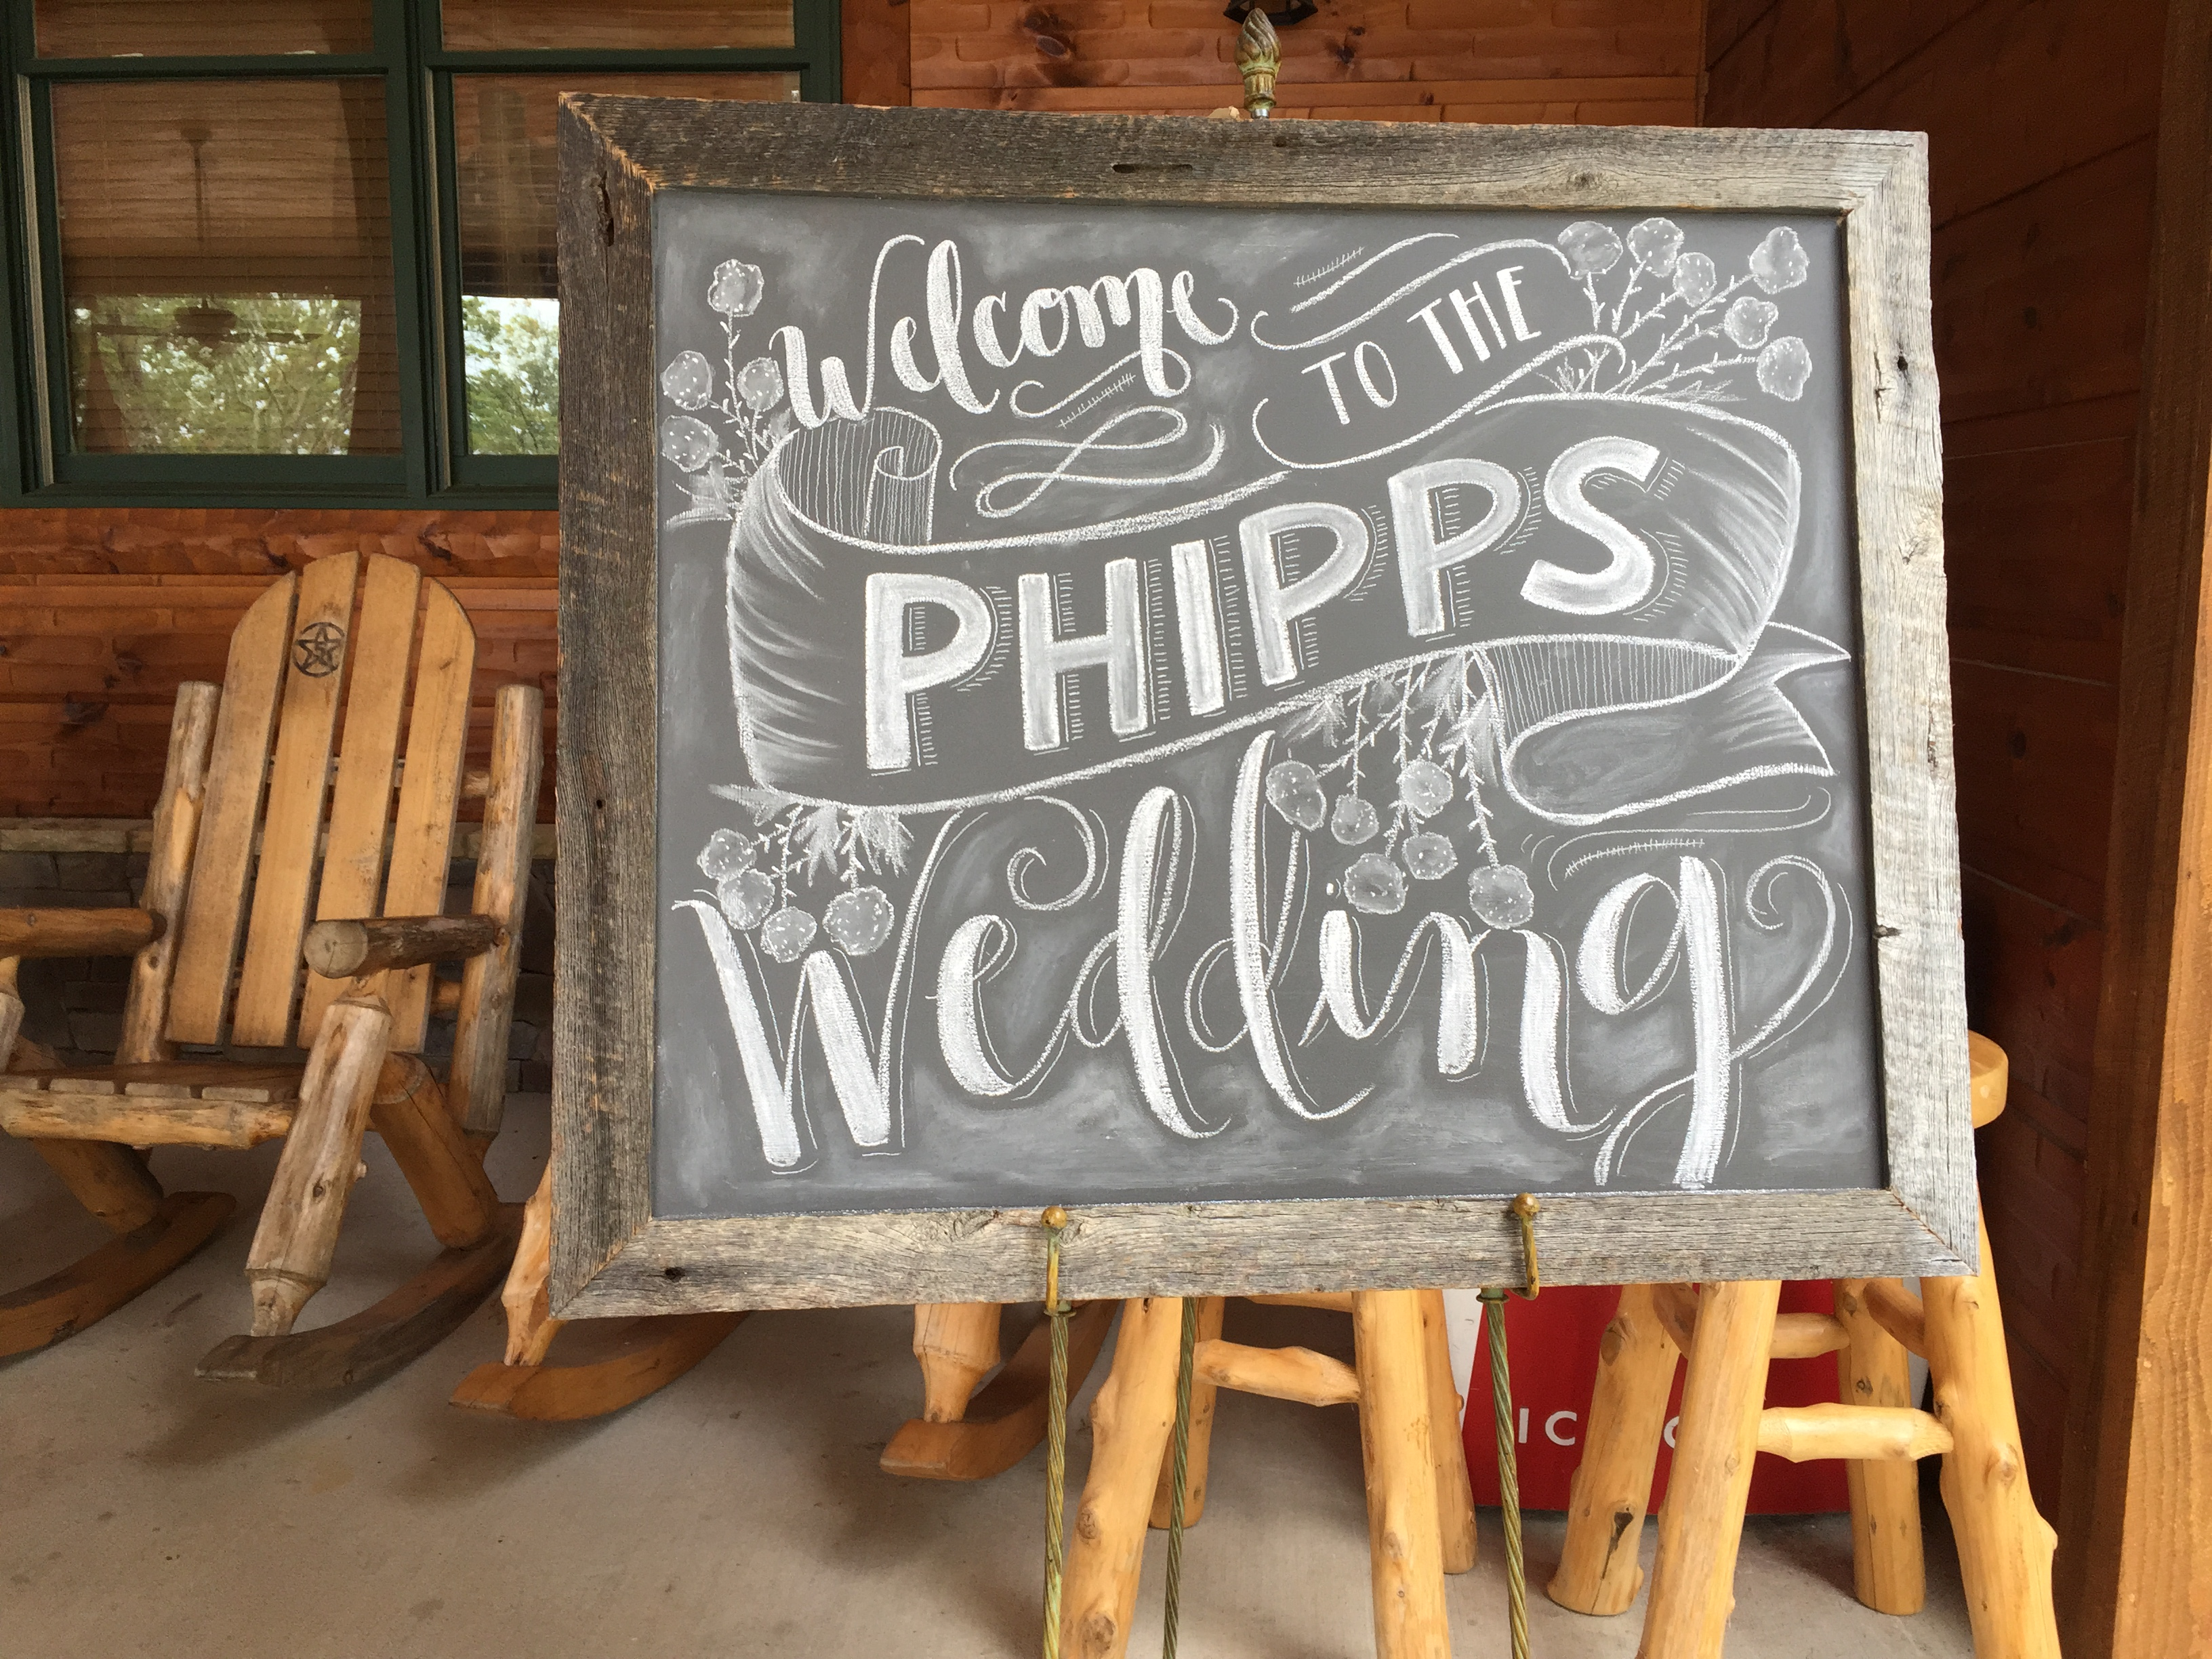 Phipps Wedding